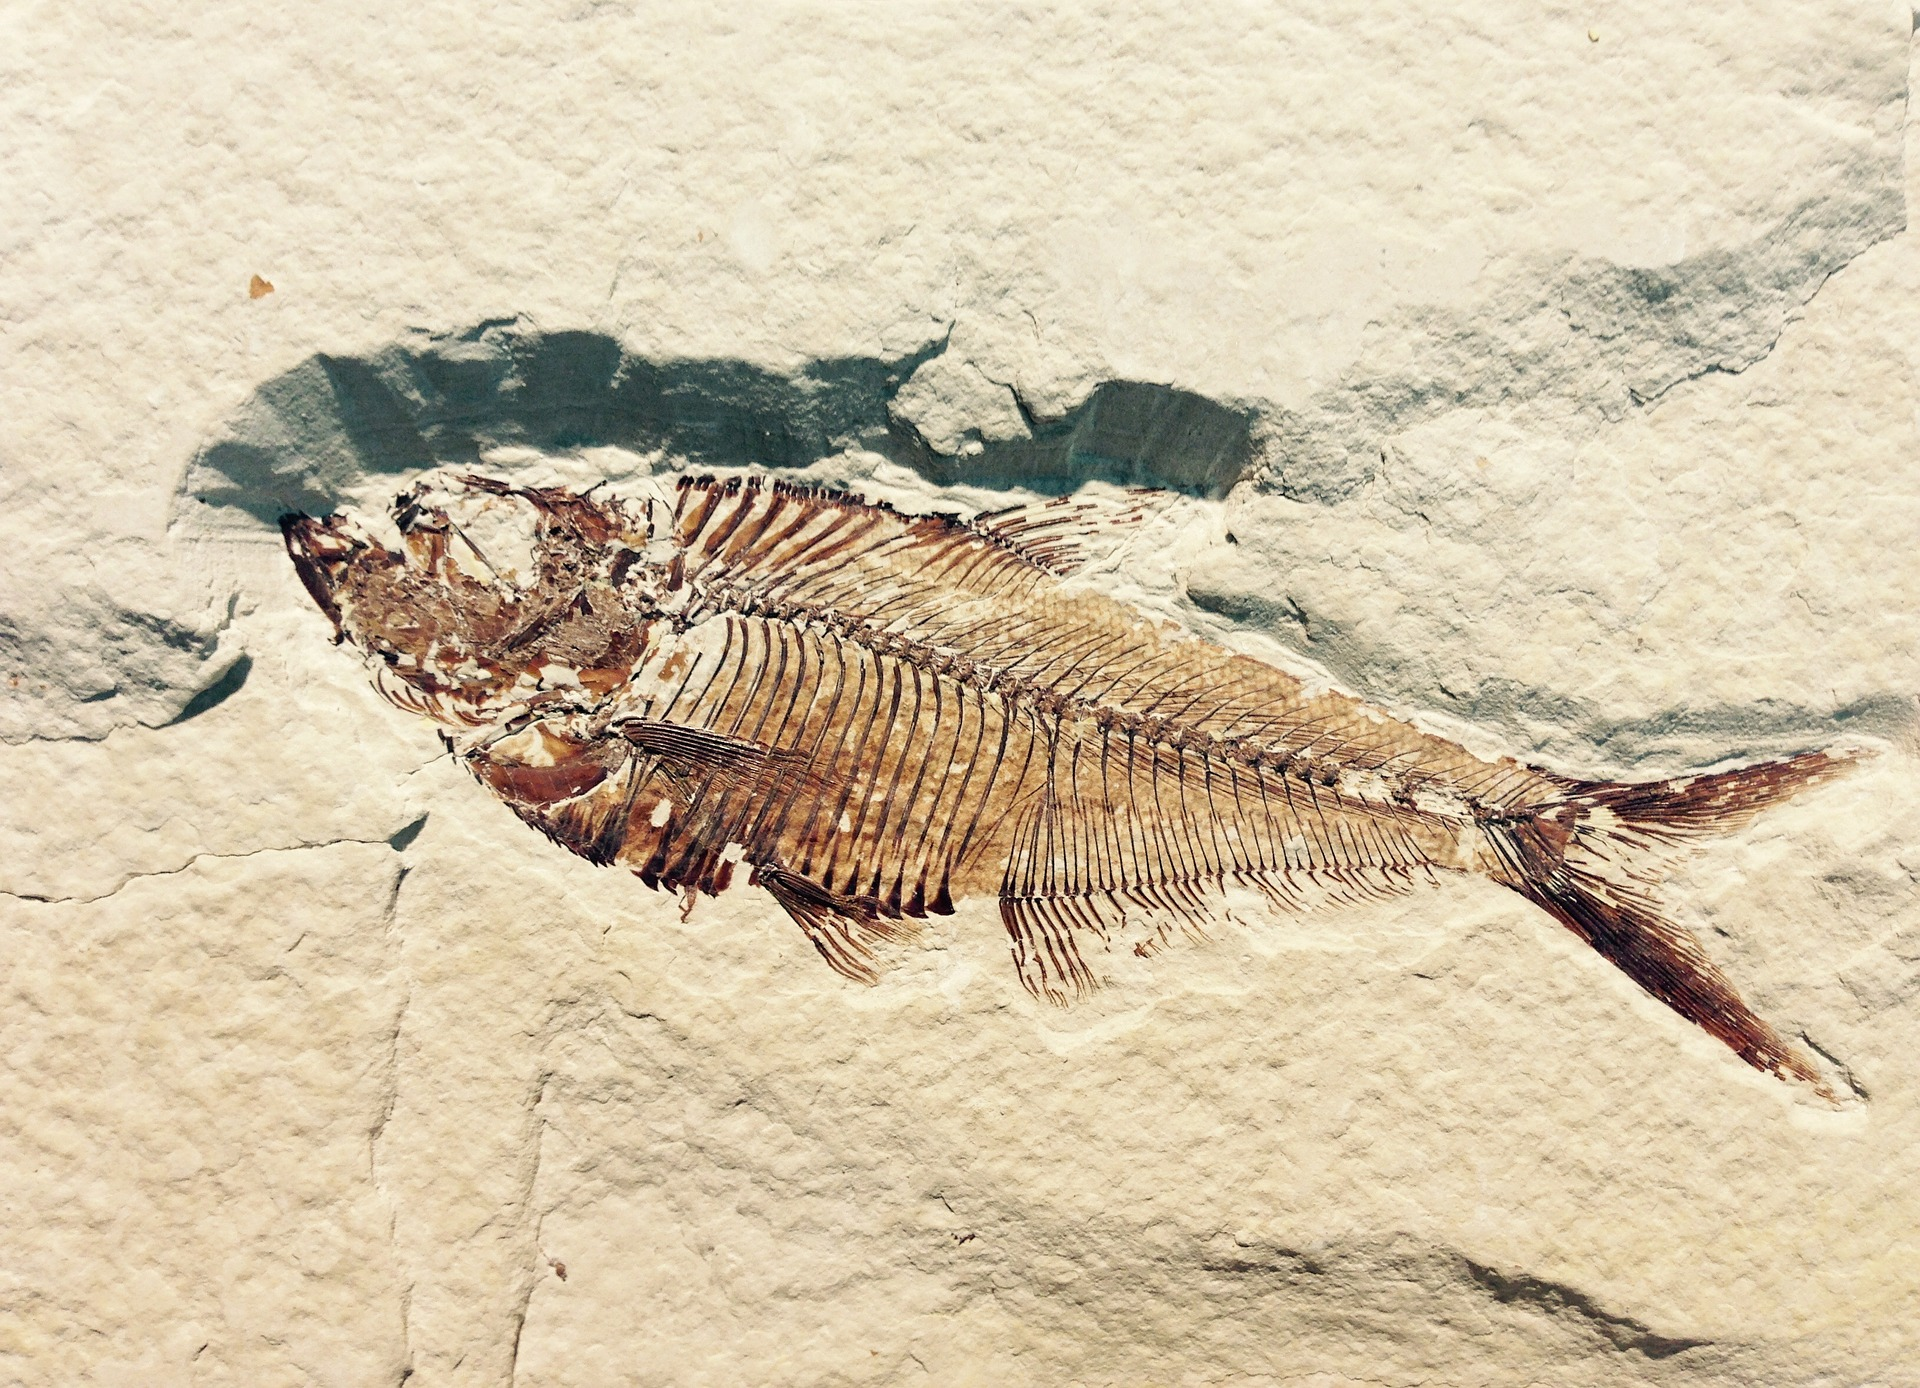 A fossil fish